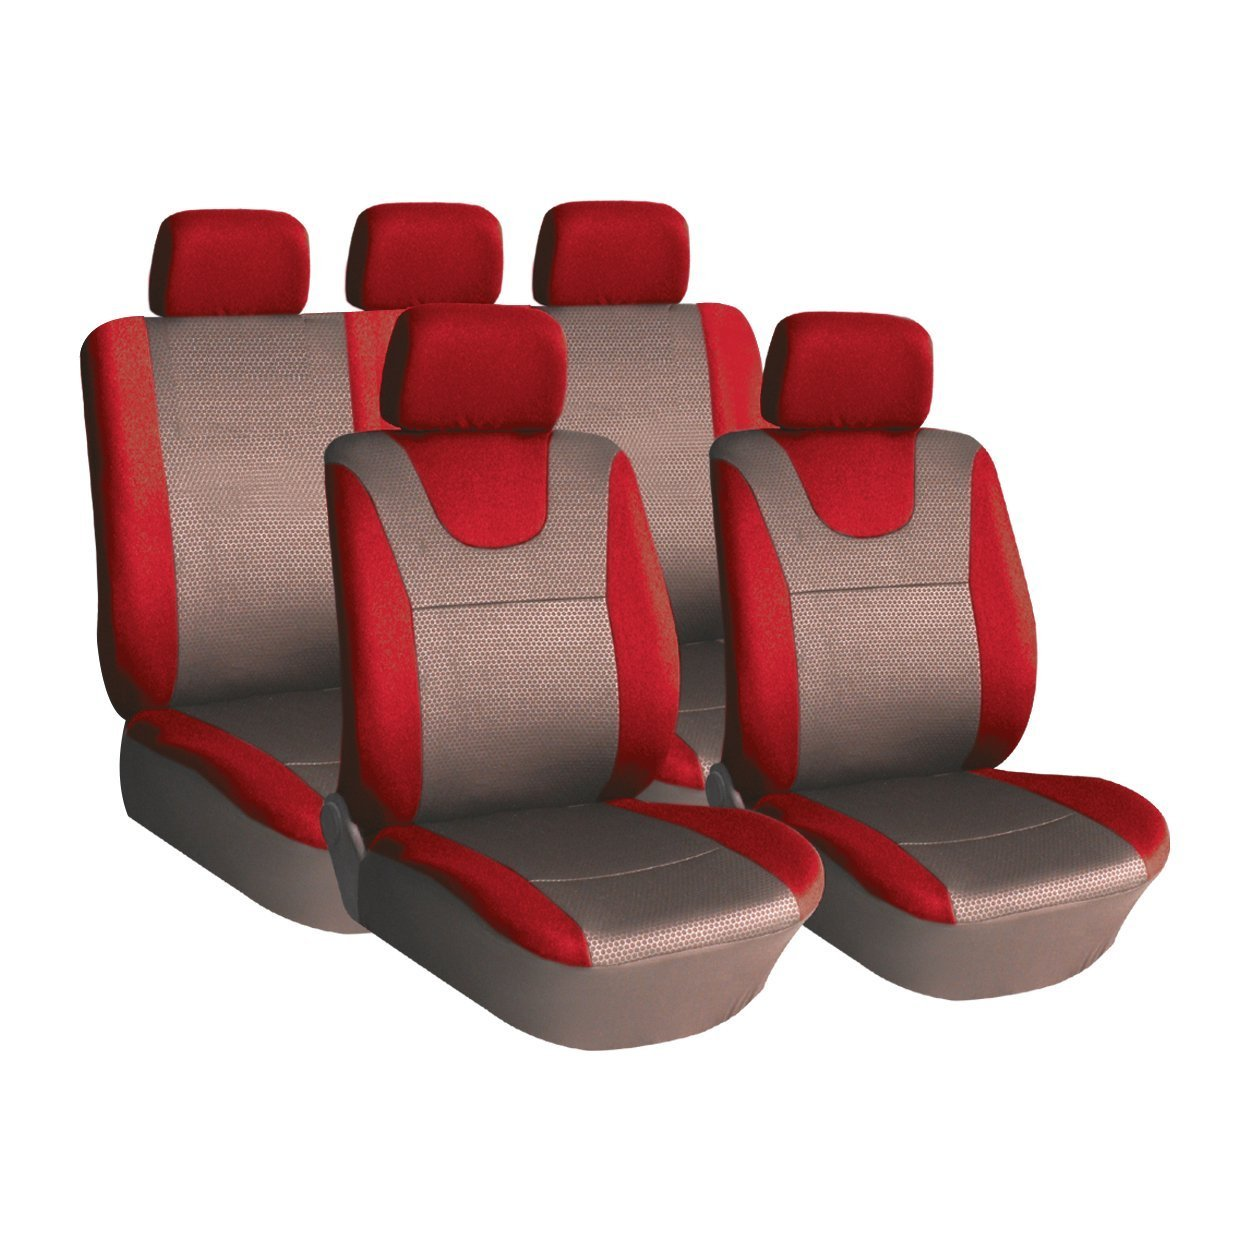 XtremeAuto Illusion Universal Car Seat Covers RED